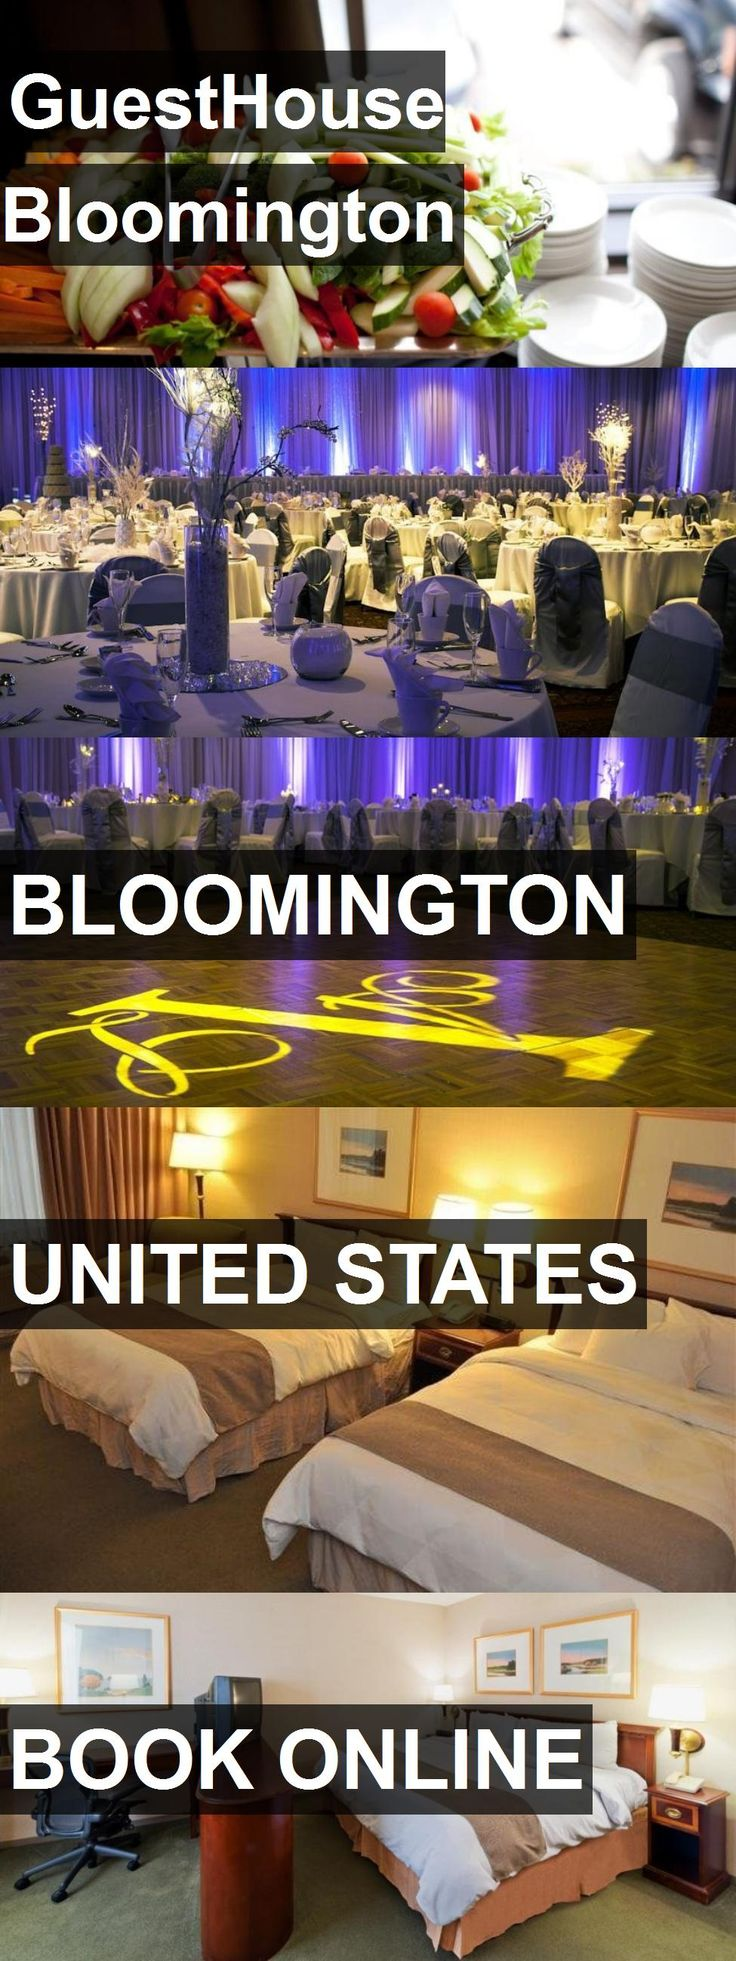 Hotel GuestHouse Bloomington in Bloomington, United States. For more information, photos, reviews and best prices please follow the link. #UnitedStates #Bloomington #travel #vacation #hotel